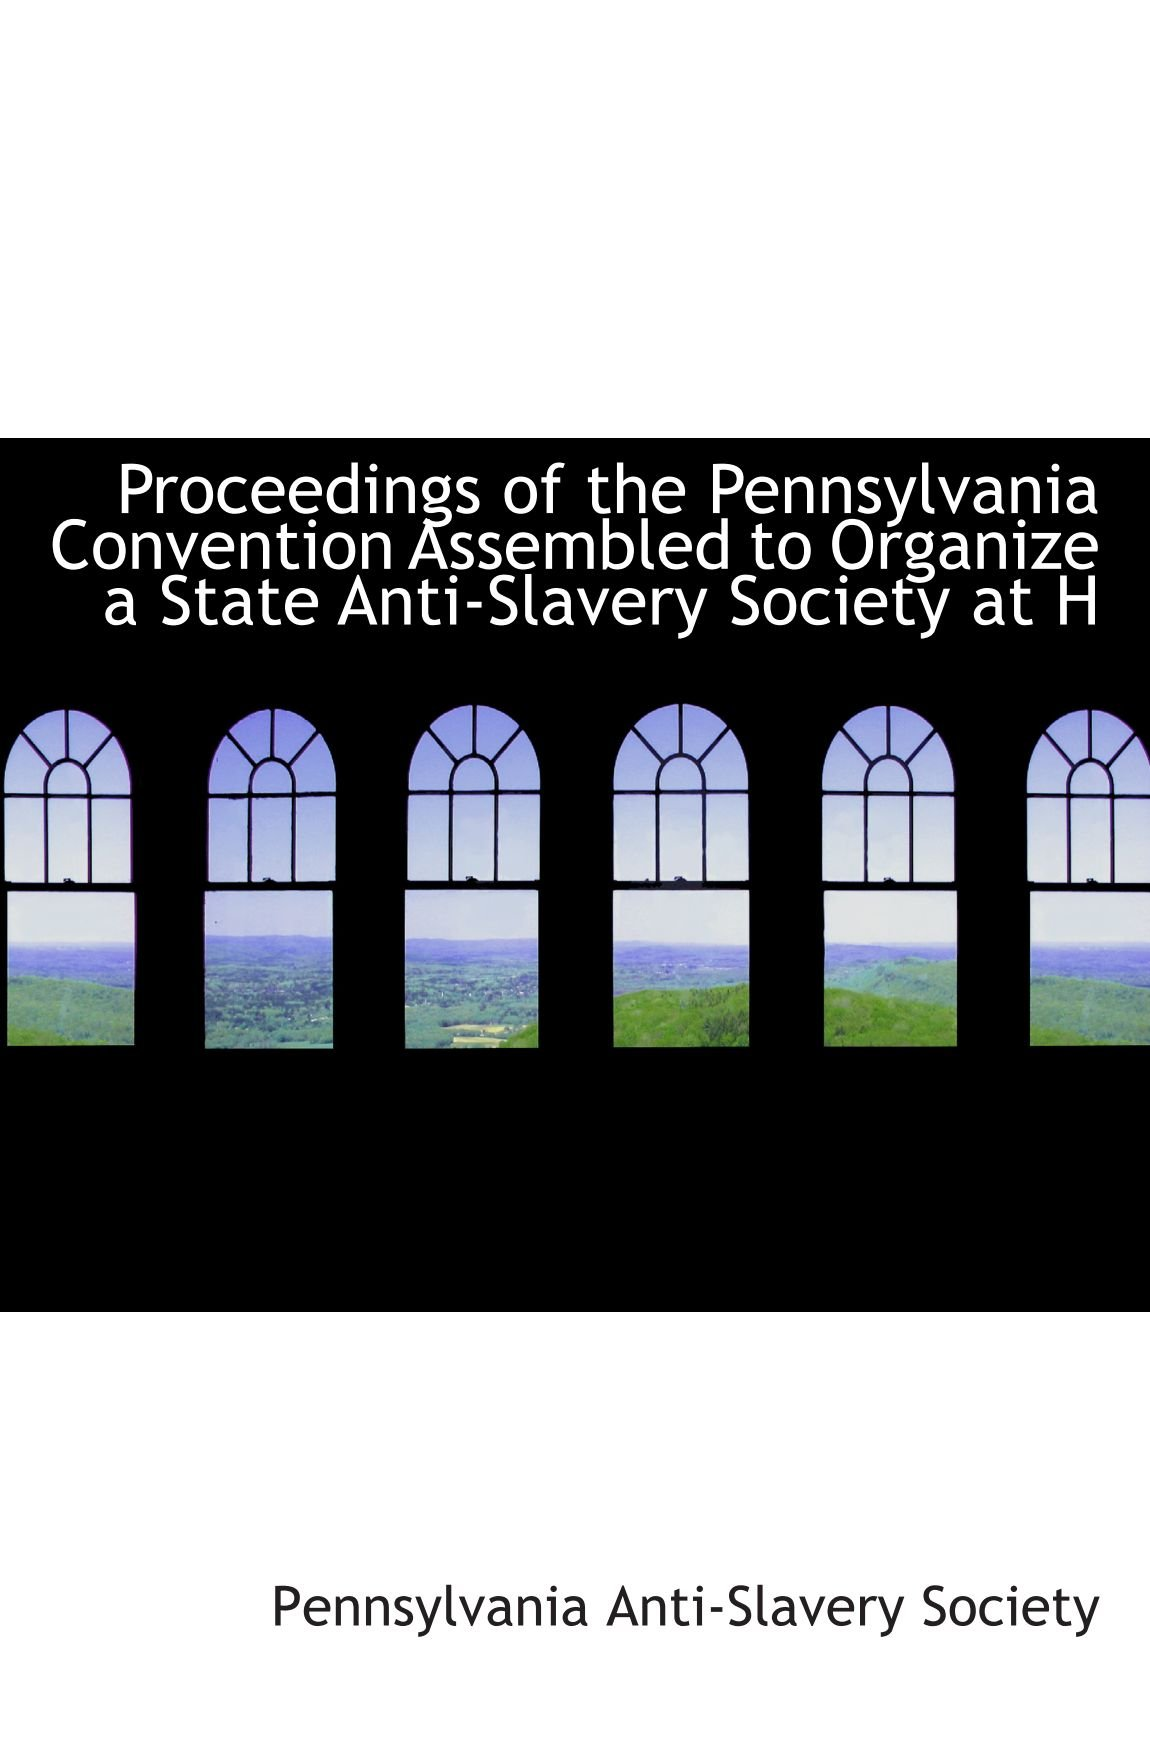 Proceedings of the Pennsylvania Convention Assembled to Organize a State Anti-Slavery Society at H ebook